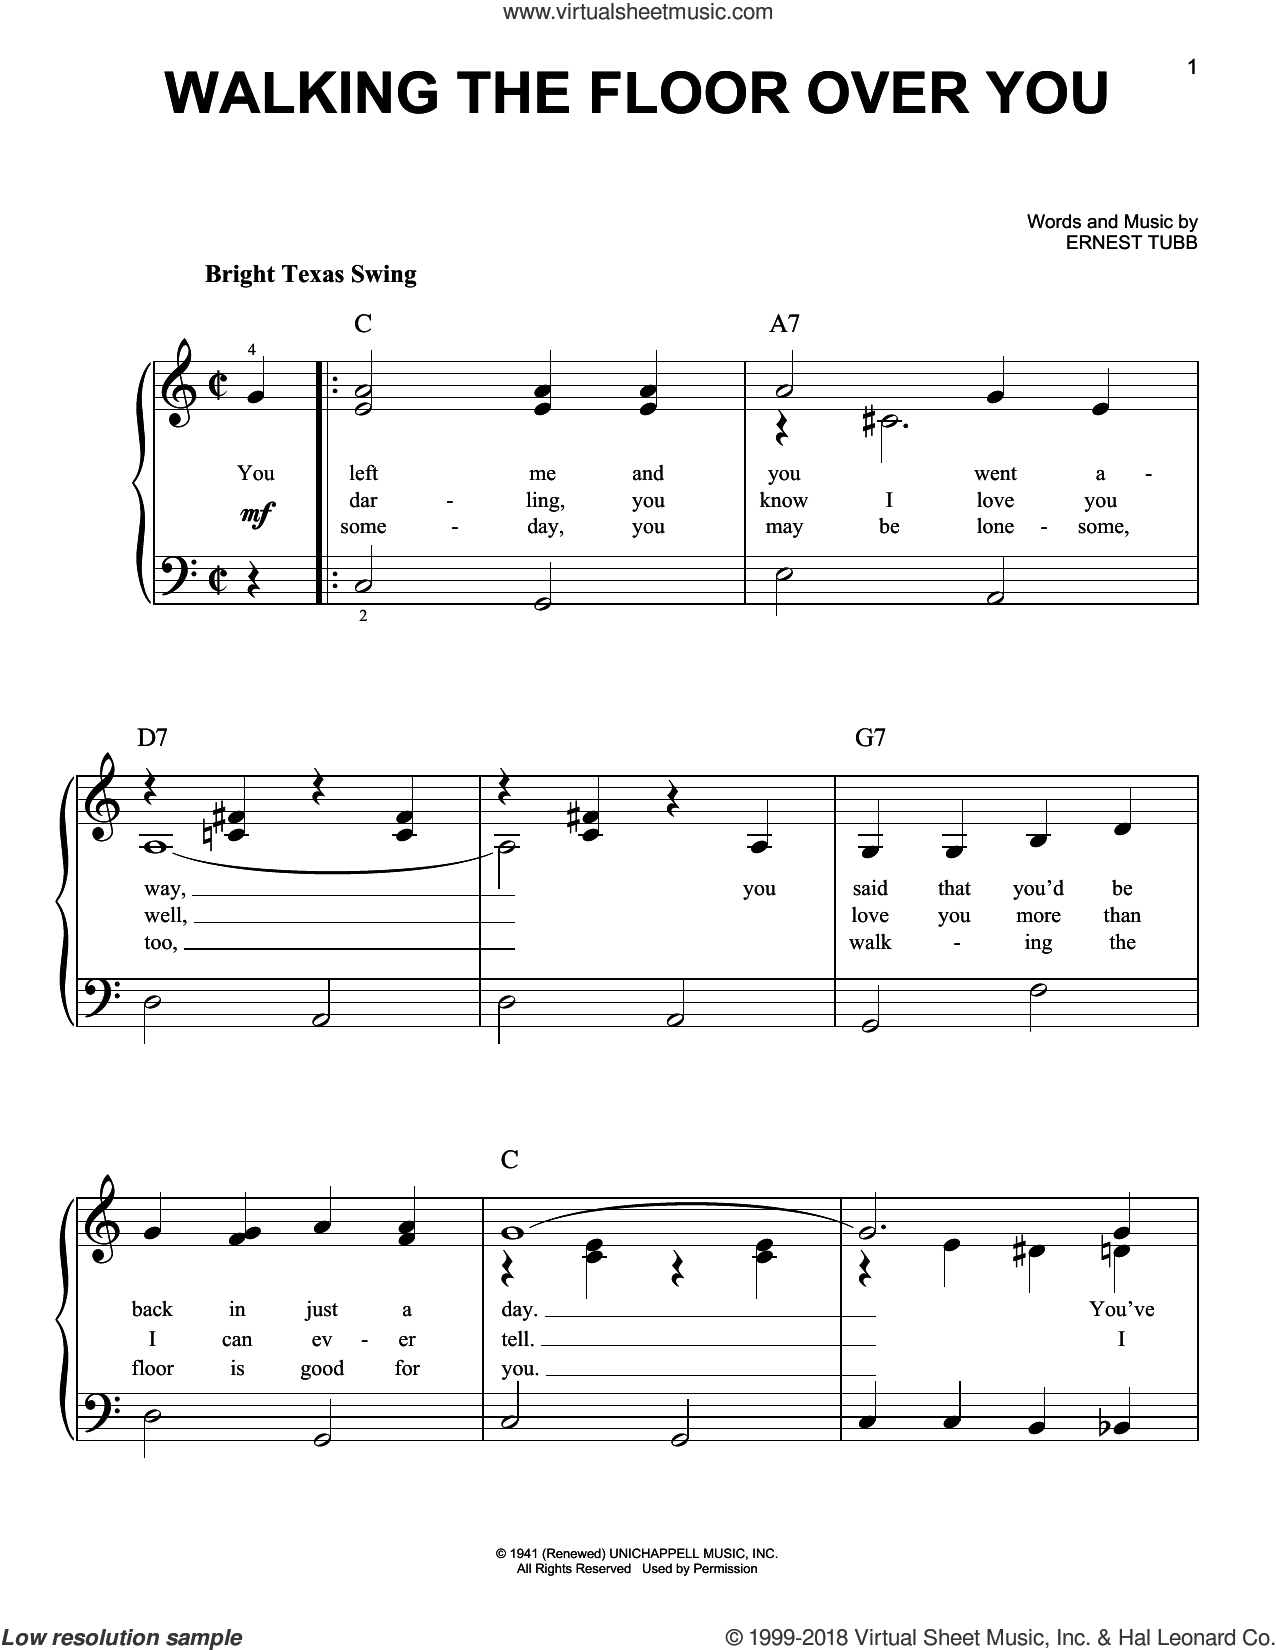 Walking The Floor Over You sheet music for piano solo by Ernest Tubb, beginner skill level